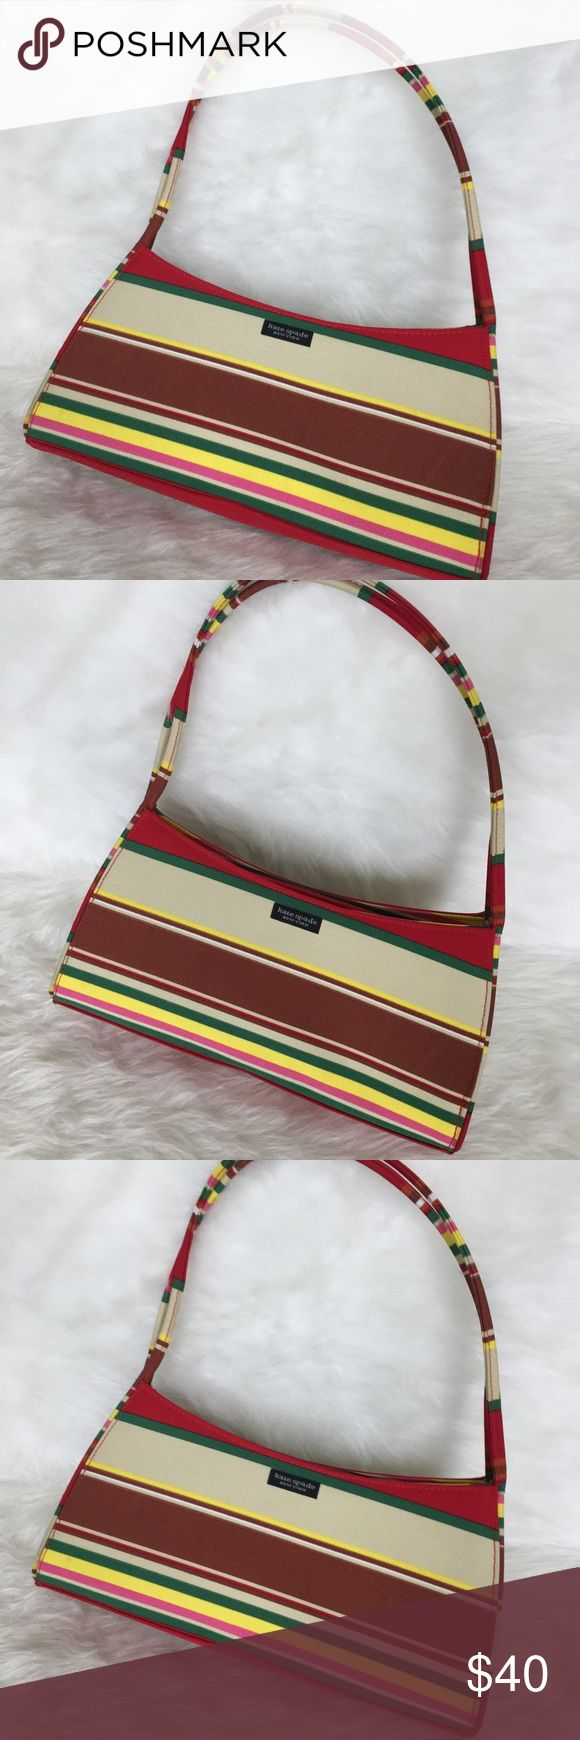 Kate Spade Multi-Stripe Shoulder Bag Super cute and perfect for summer! Excellent pre owned condition, clean inside and out. Top zip closure, inside zip pocket, two handles and red checked lining. Stunning color combination of tan, red, green, pink, rust, and yellow. No Trades. TB1333. kate spade Bags Shoulder Bags